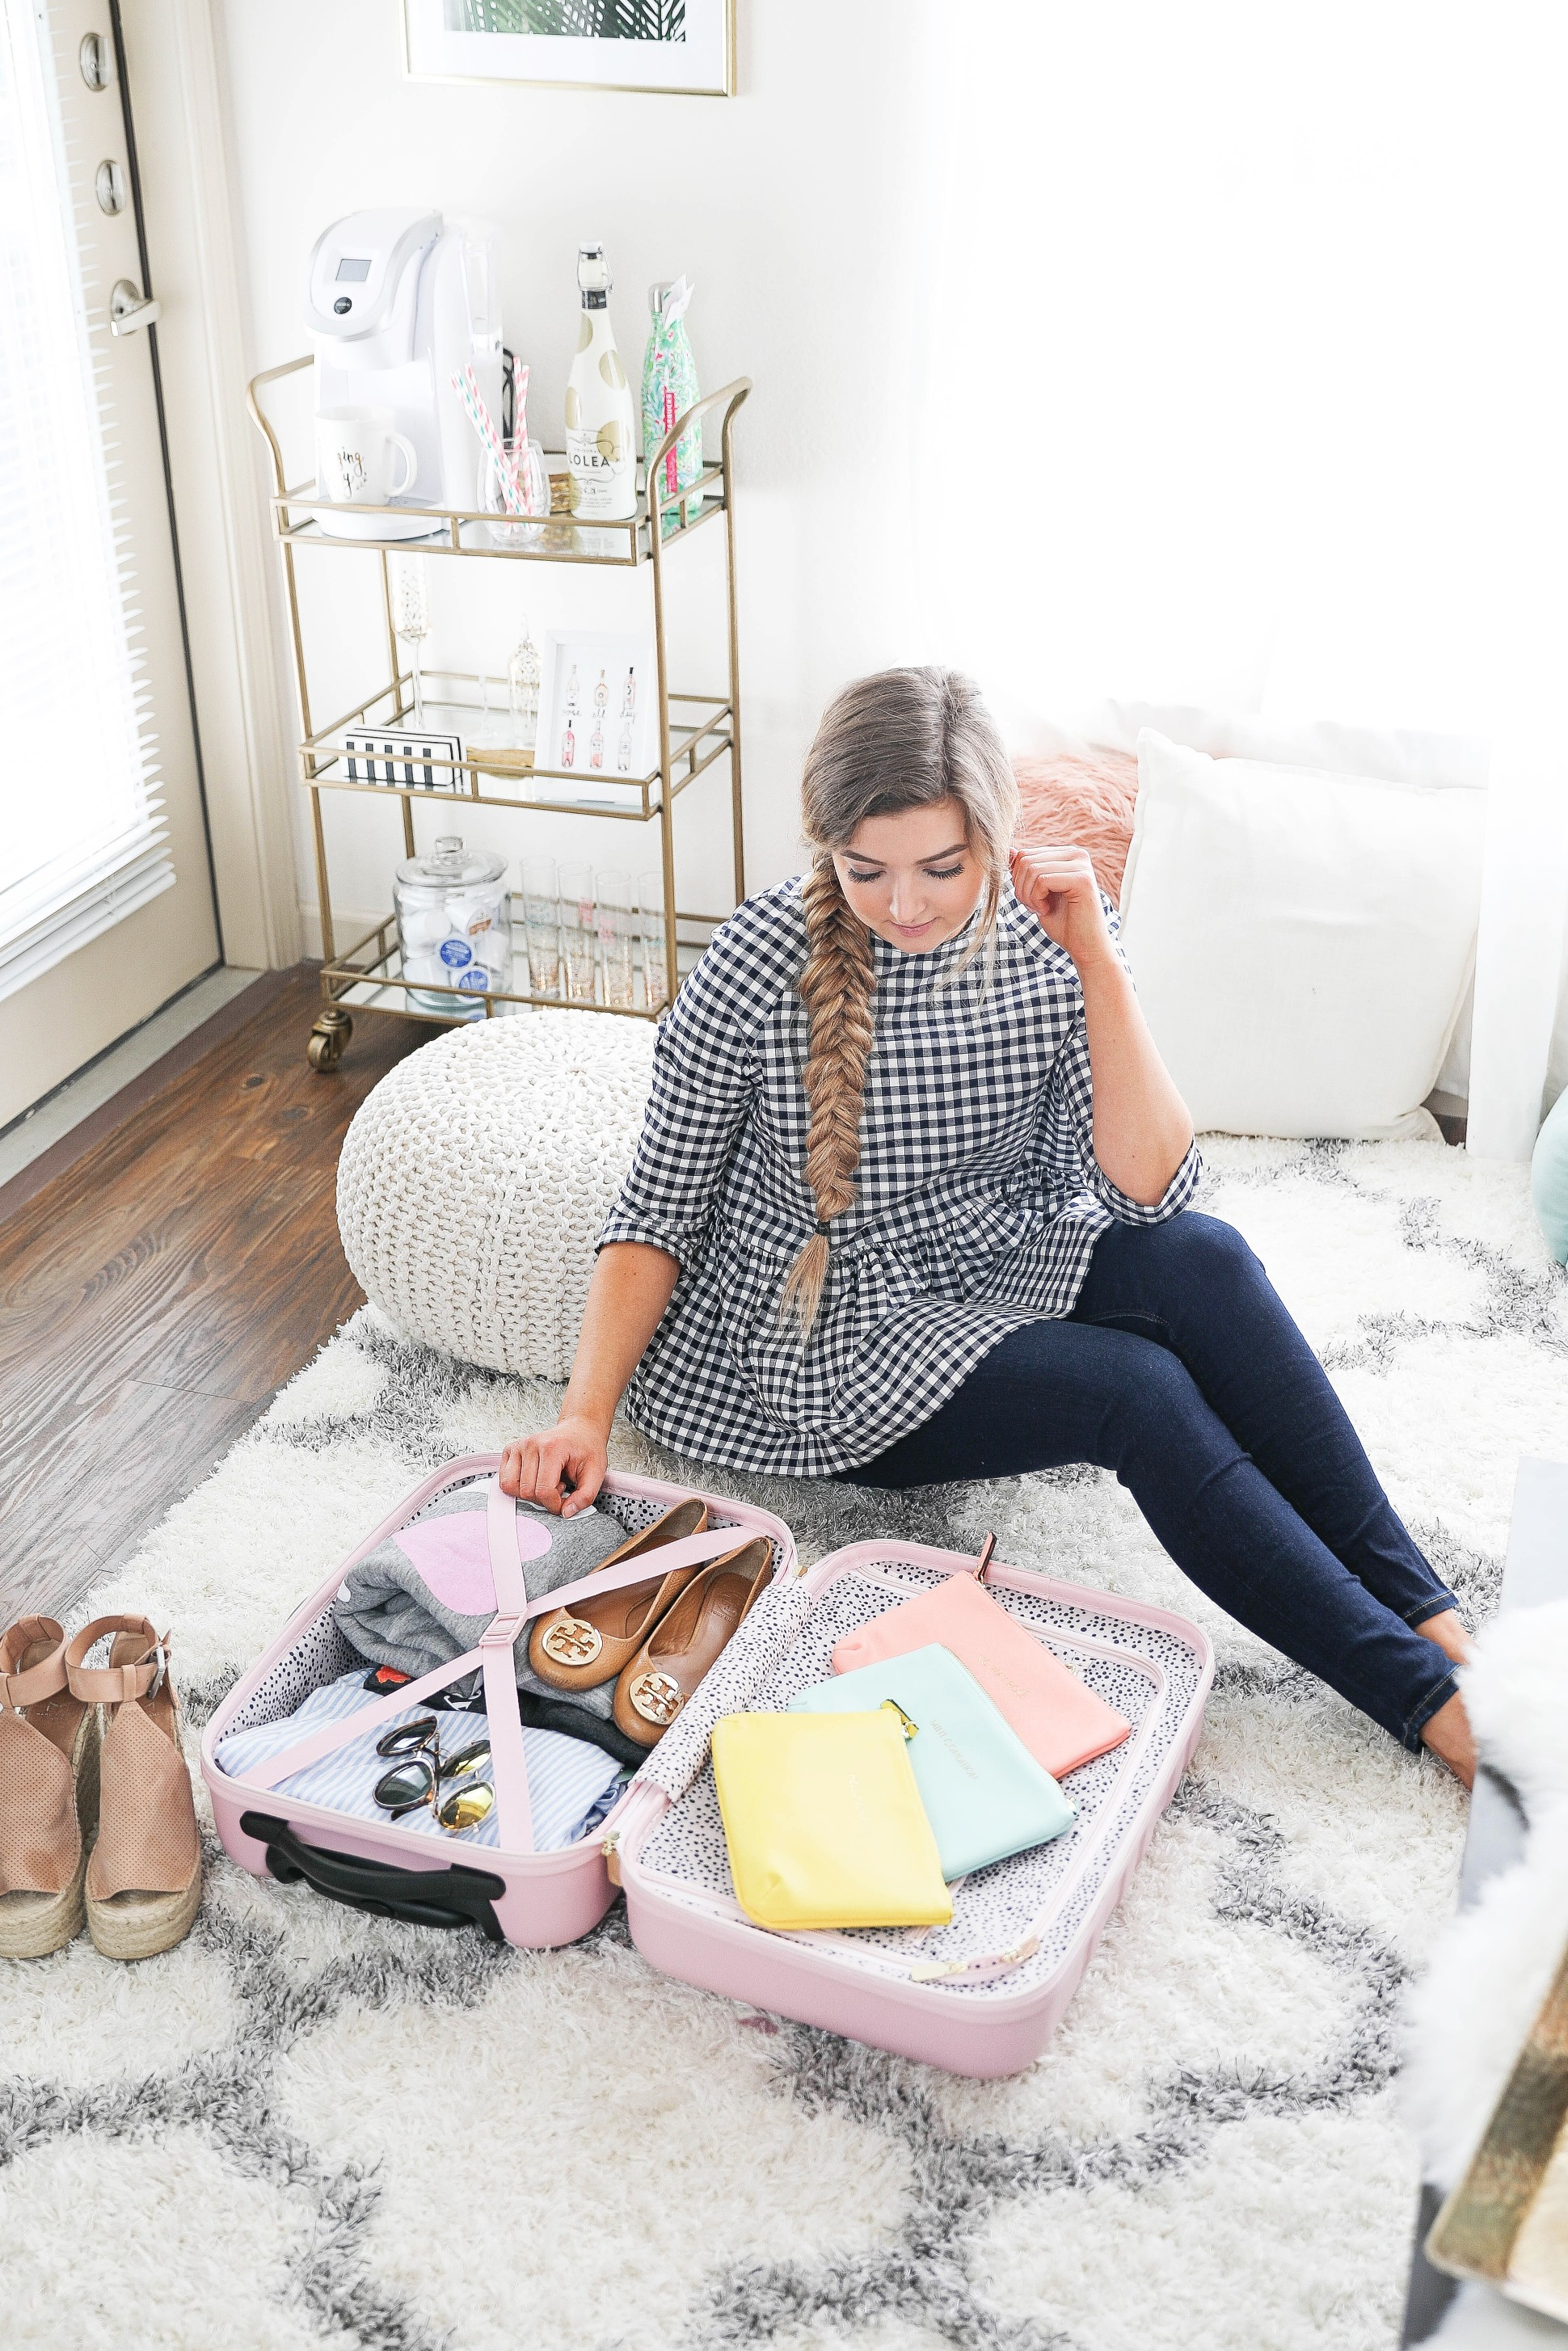 Packing tips and travel tips for frequent flyers! How to travel easier plus cute suitcases. On the blog Daily Dose of Charm by Lauren Lindmark dailydoseofcharm.com